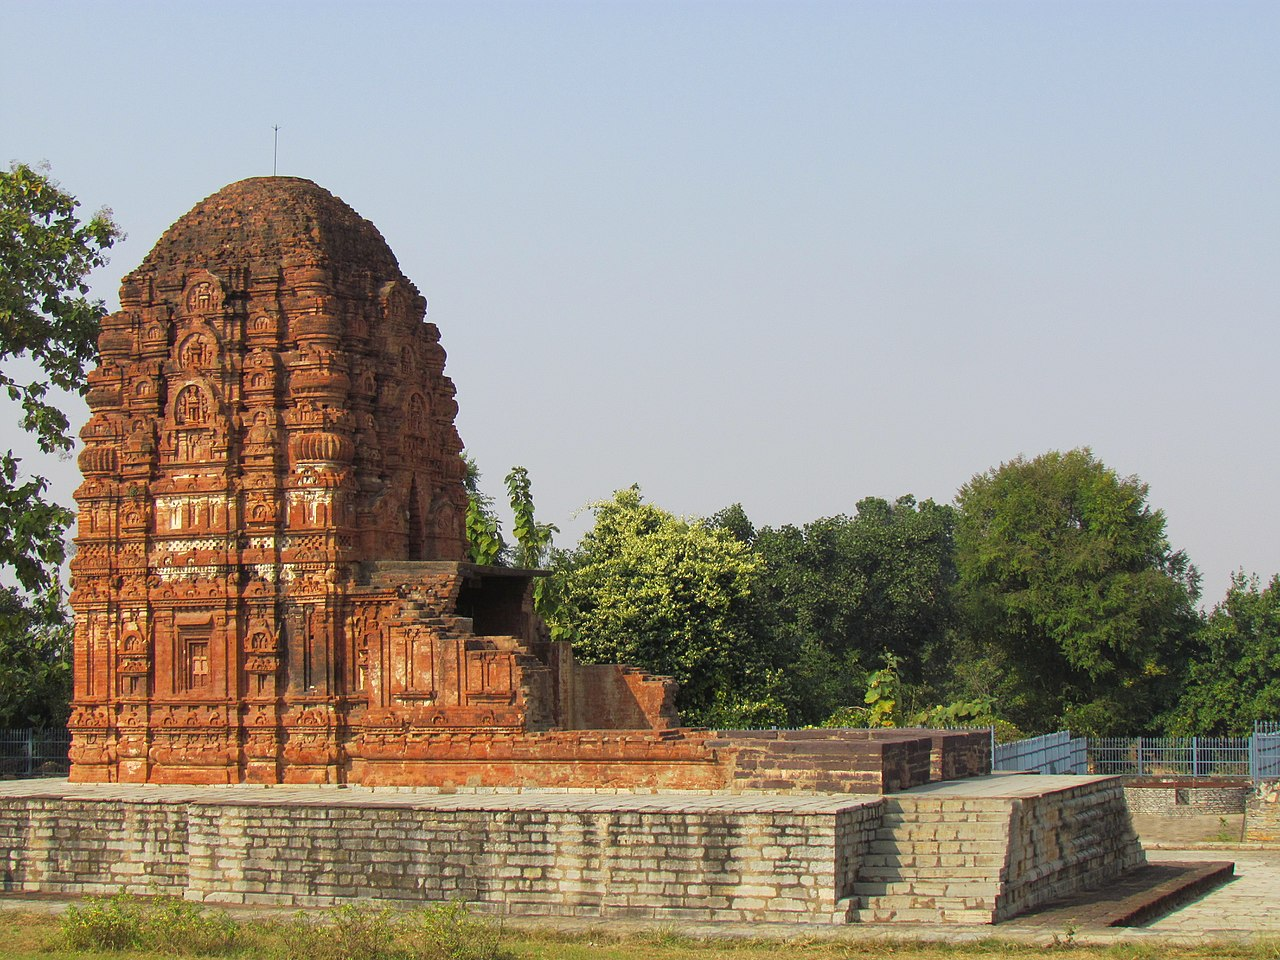 Top Historical Place To Visit In Chhattisgarh-Laxman Temple